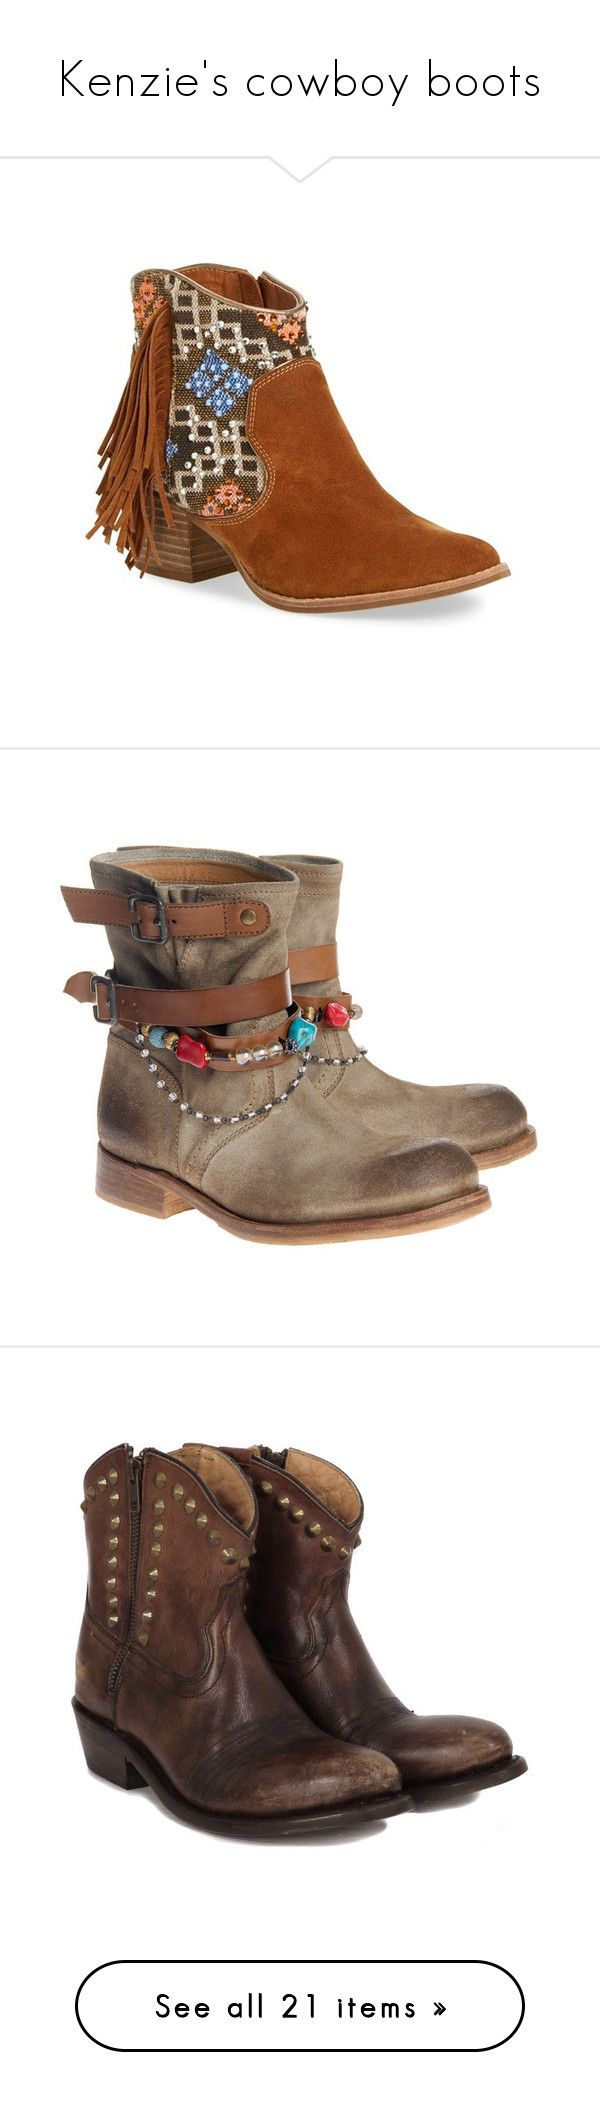 """Kenzie's cowboy boots"" by booboored ❤ liked on Polyvore featuring shoes, boots, ankle booties, tan suede, suede ankle boots, fringe boots, suede booties, tan ankle boots, short fringe boots and botas"